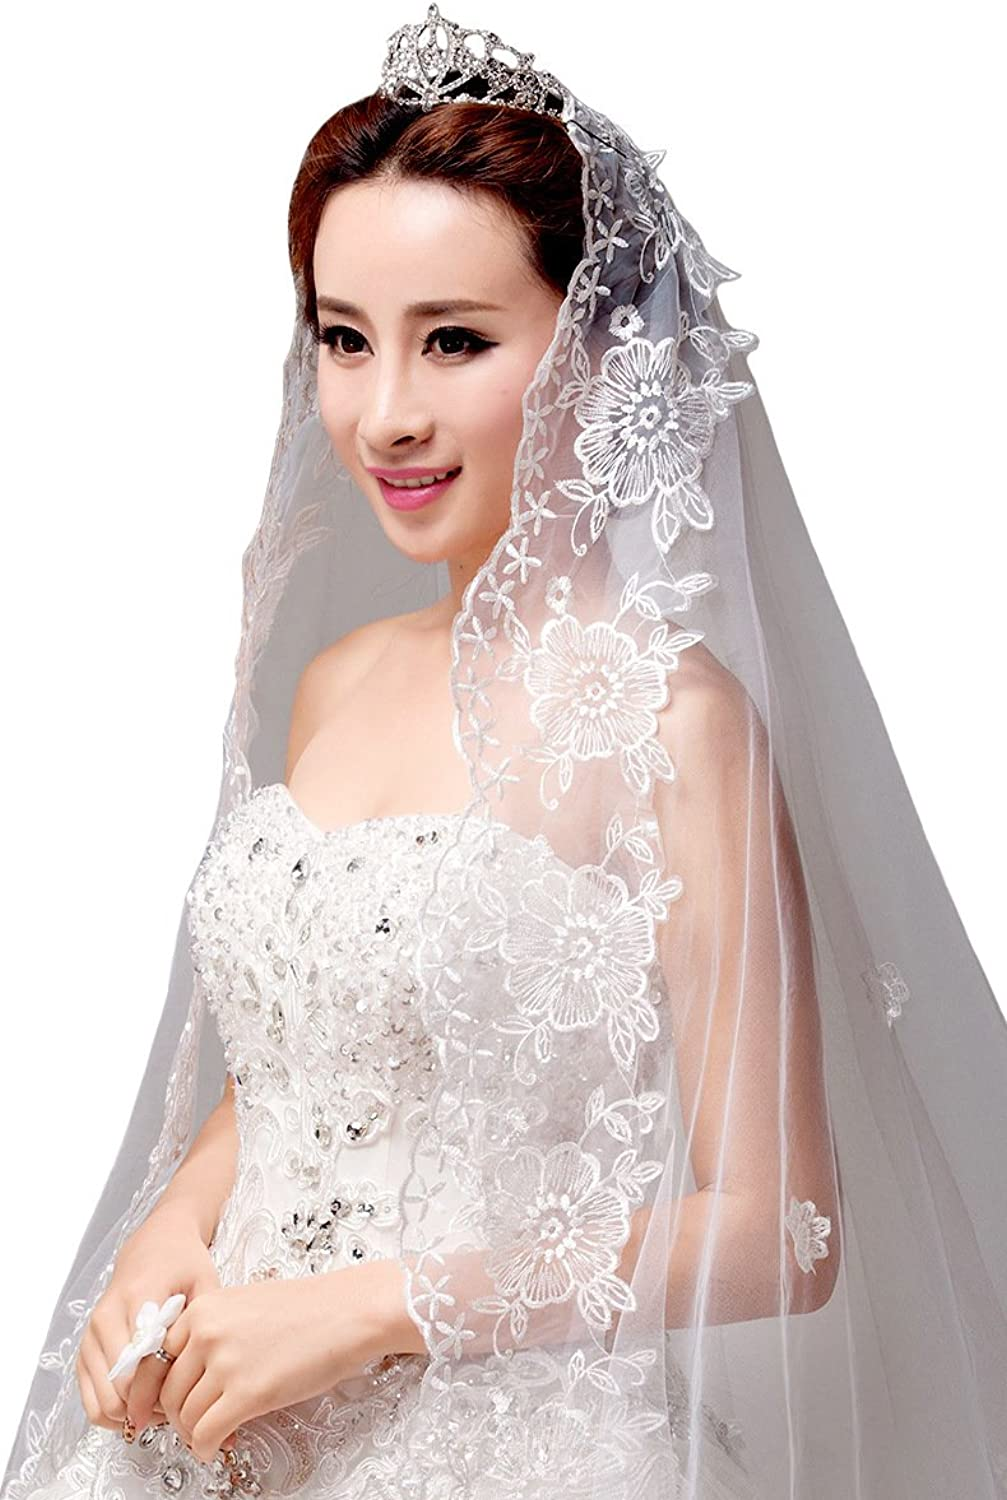 AliceHouse 2017 Women's Birdcage Long Gorgeous Lace Chapel Cathedral Wedding Veils MV29